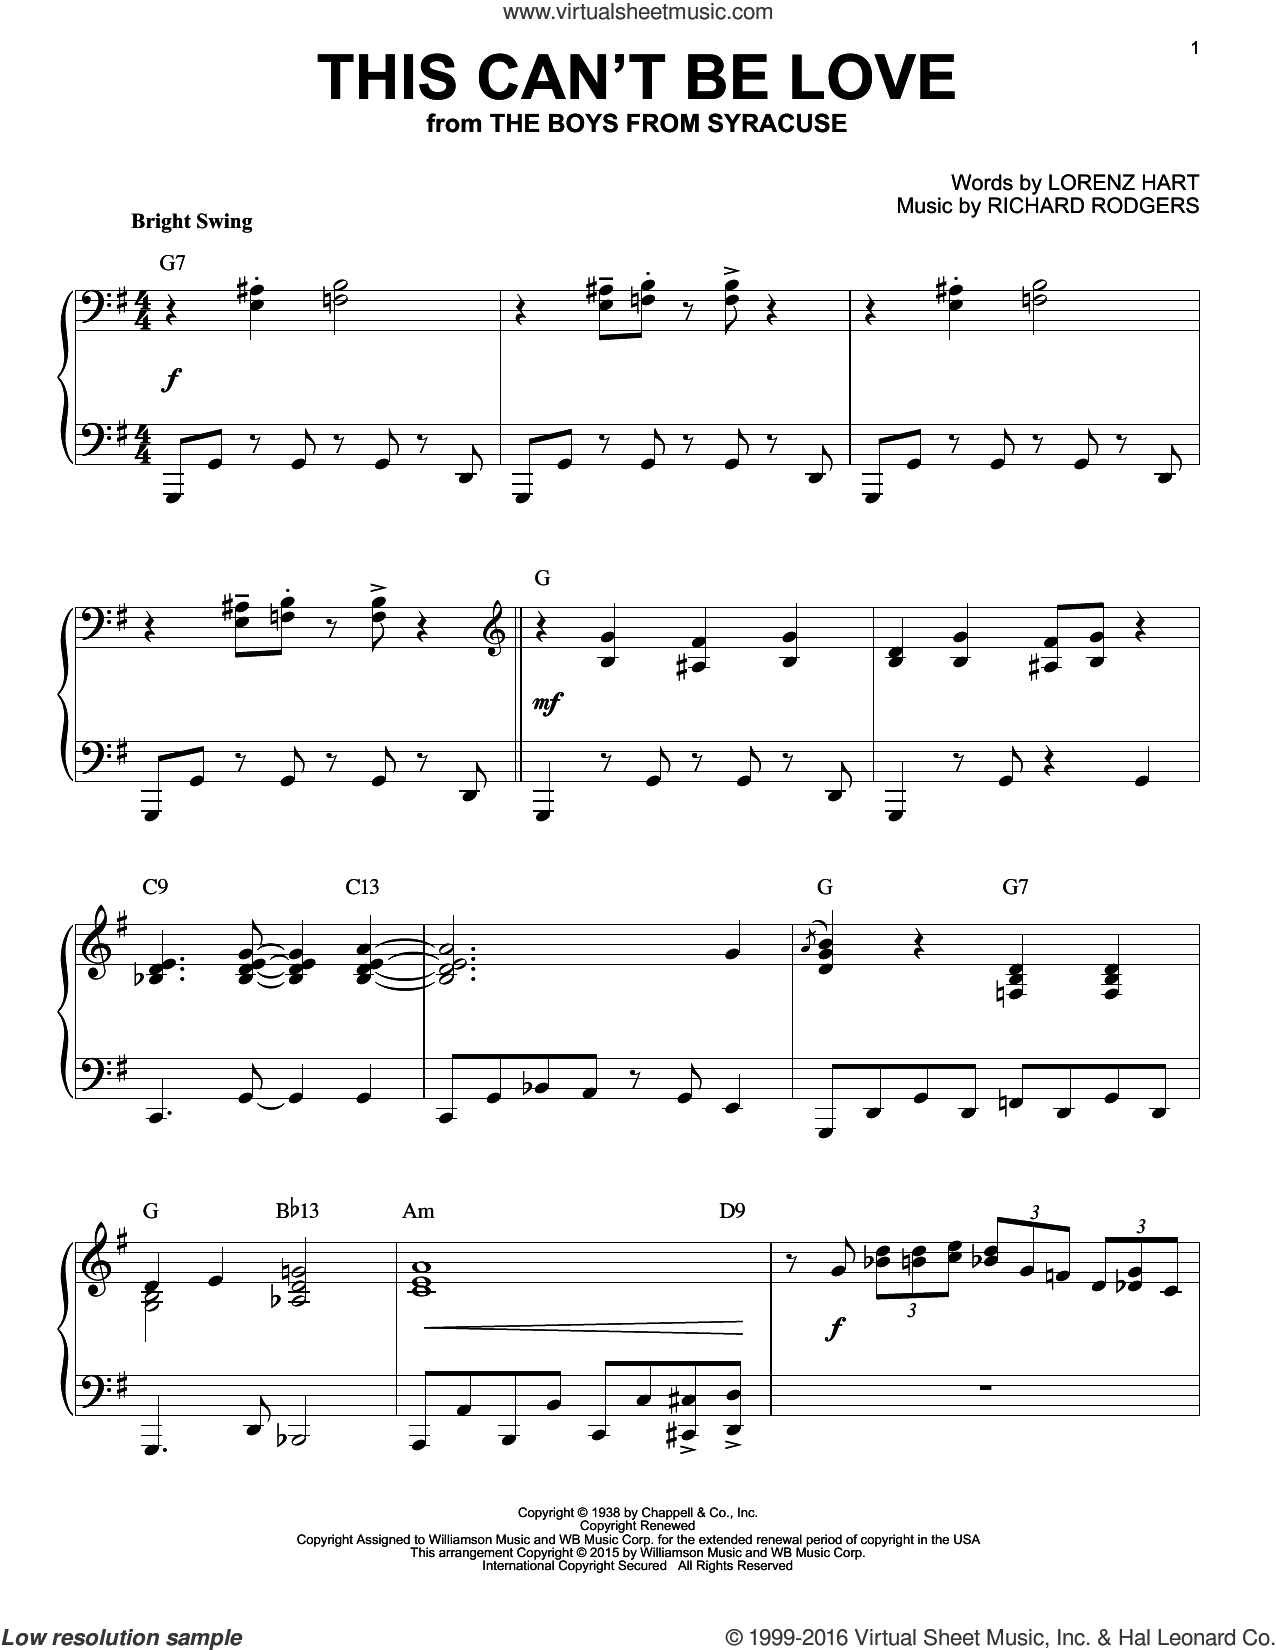 This Can't Be Love sheet music for piano solo by Rodgers & Hart, Lorenz Hart and Richard Rodgers, intermediate skill level